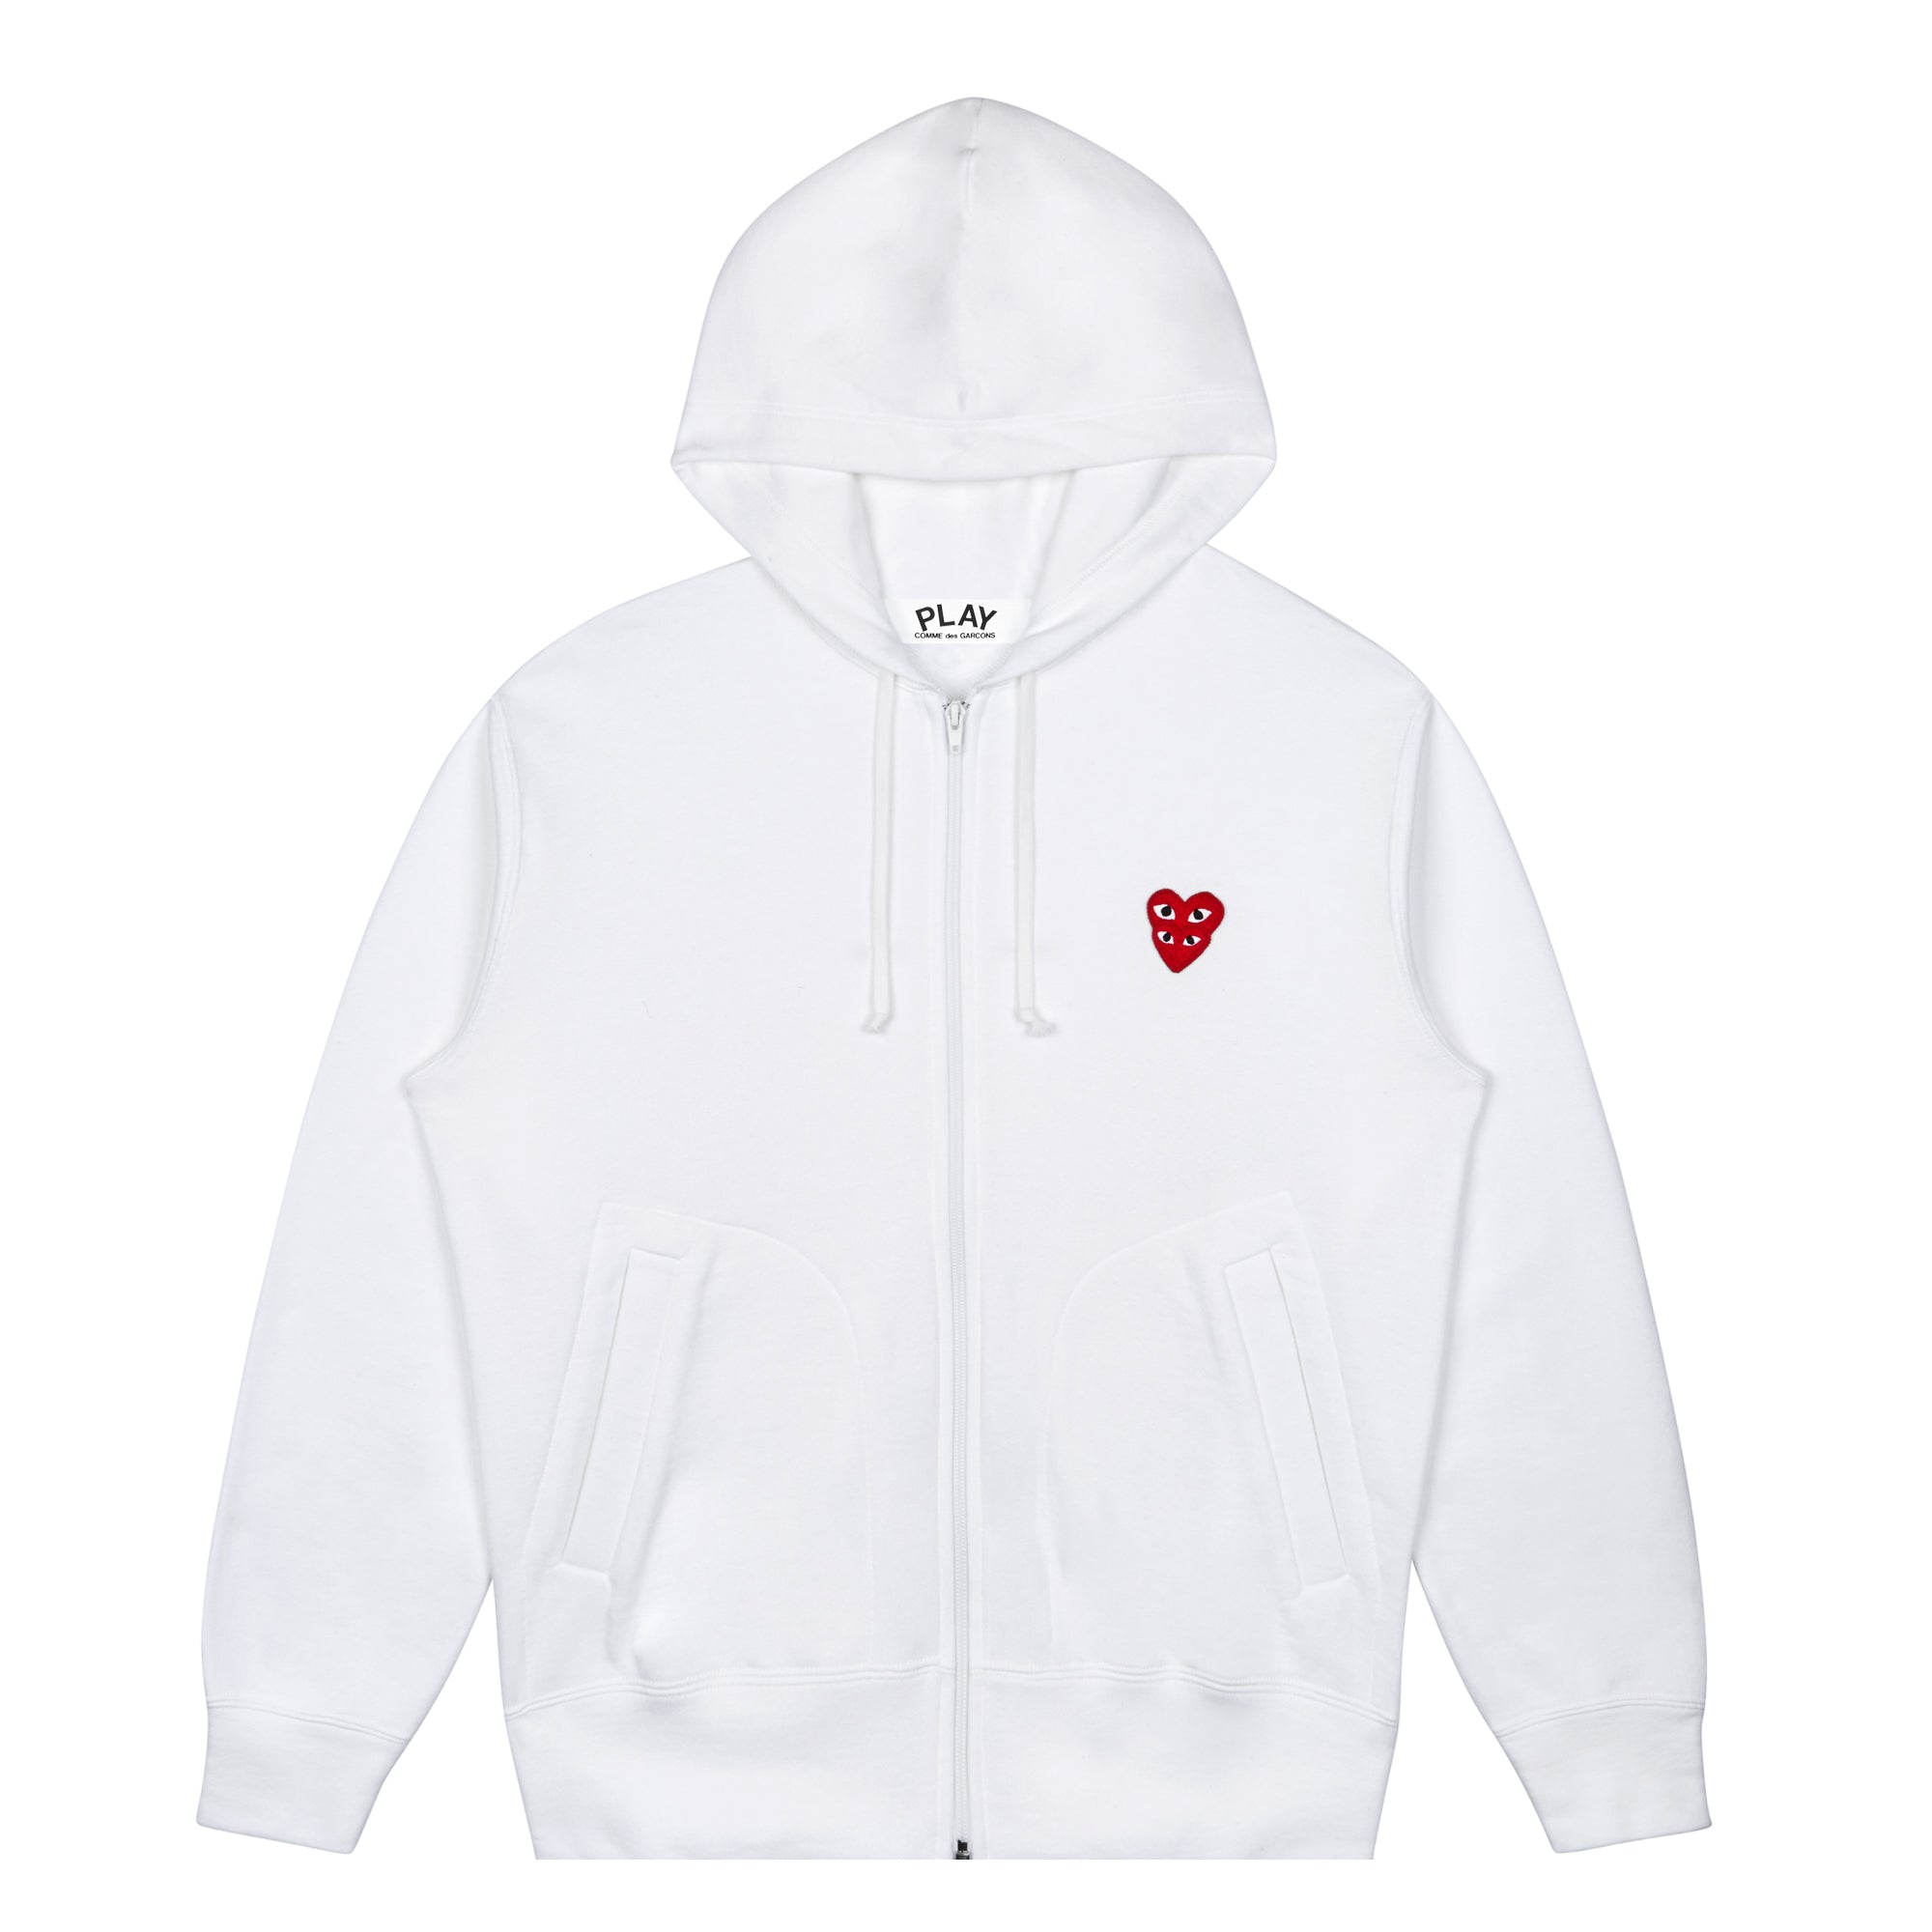 Play Comme des Garçons Hooded Sweatshirt with Double Red Heart (White)